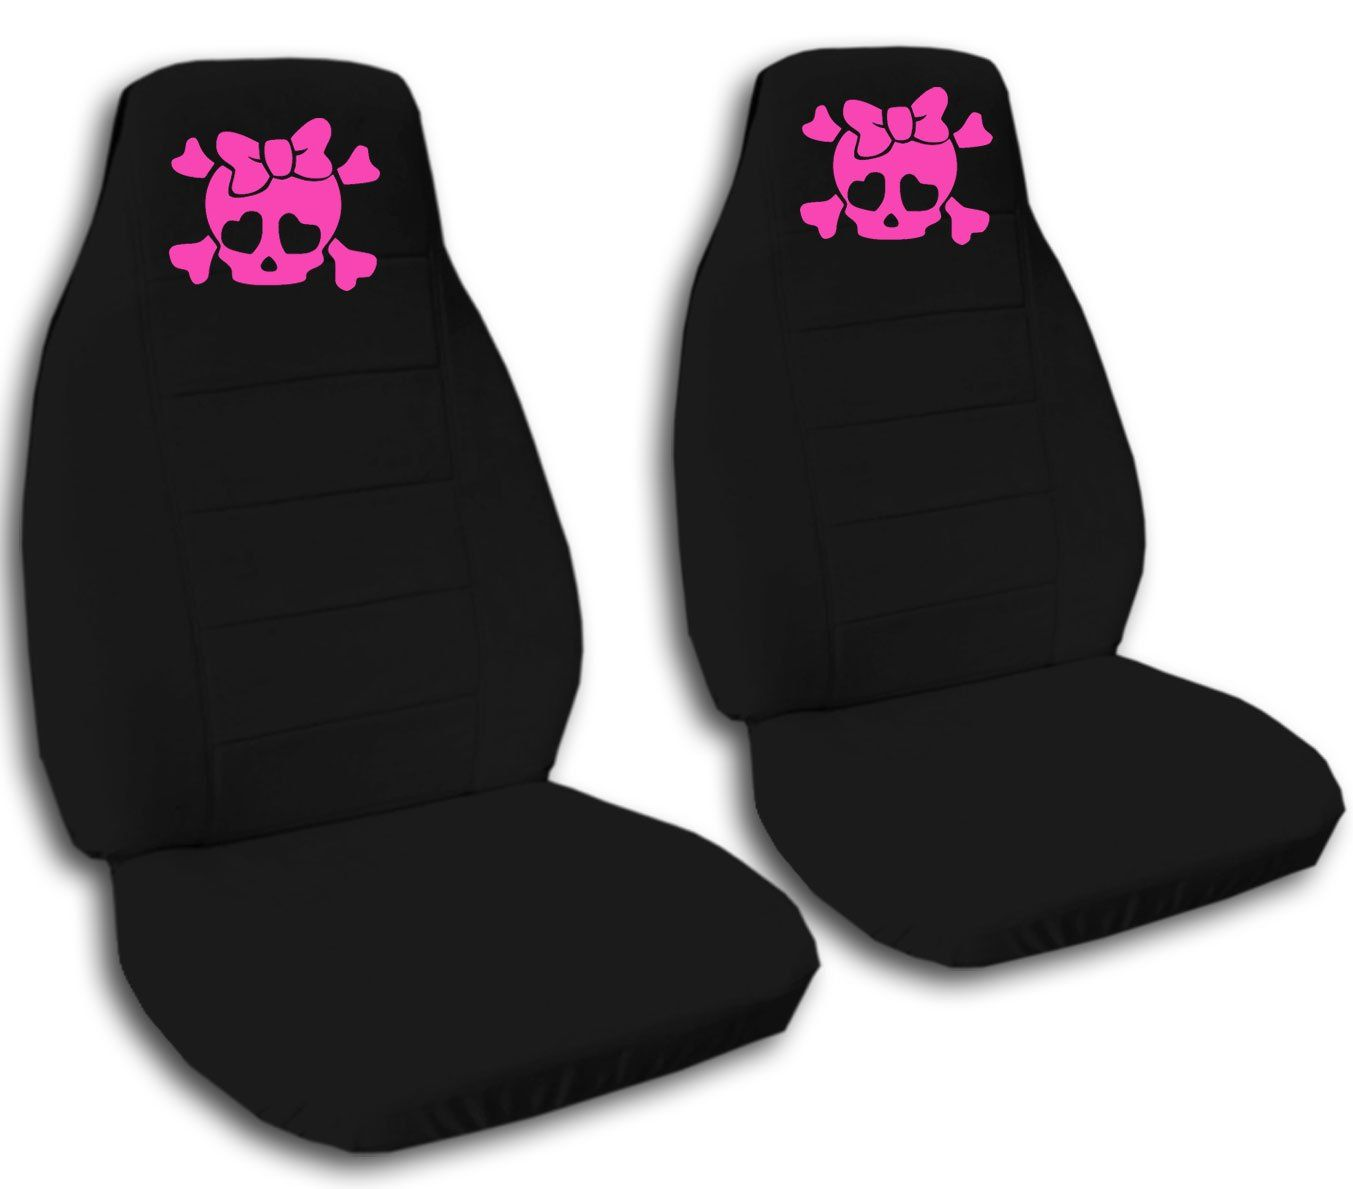 Fine 2 Black Girly Skull Seat Covers For A 2009 To 2011 Toyota Gmtry Best Dining Table And Chair Ideas Images Gmtryco